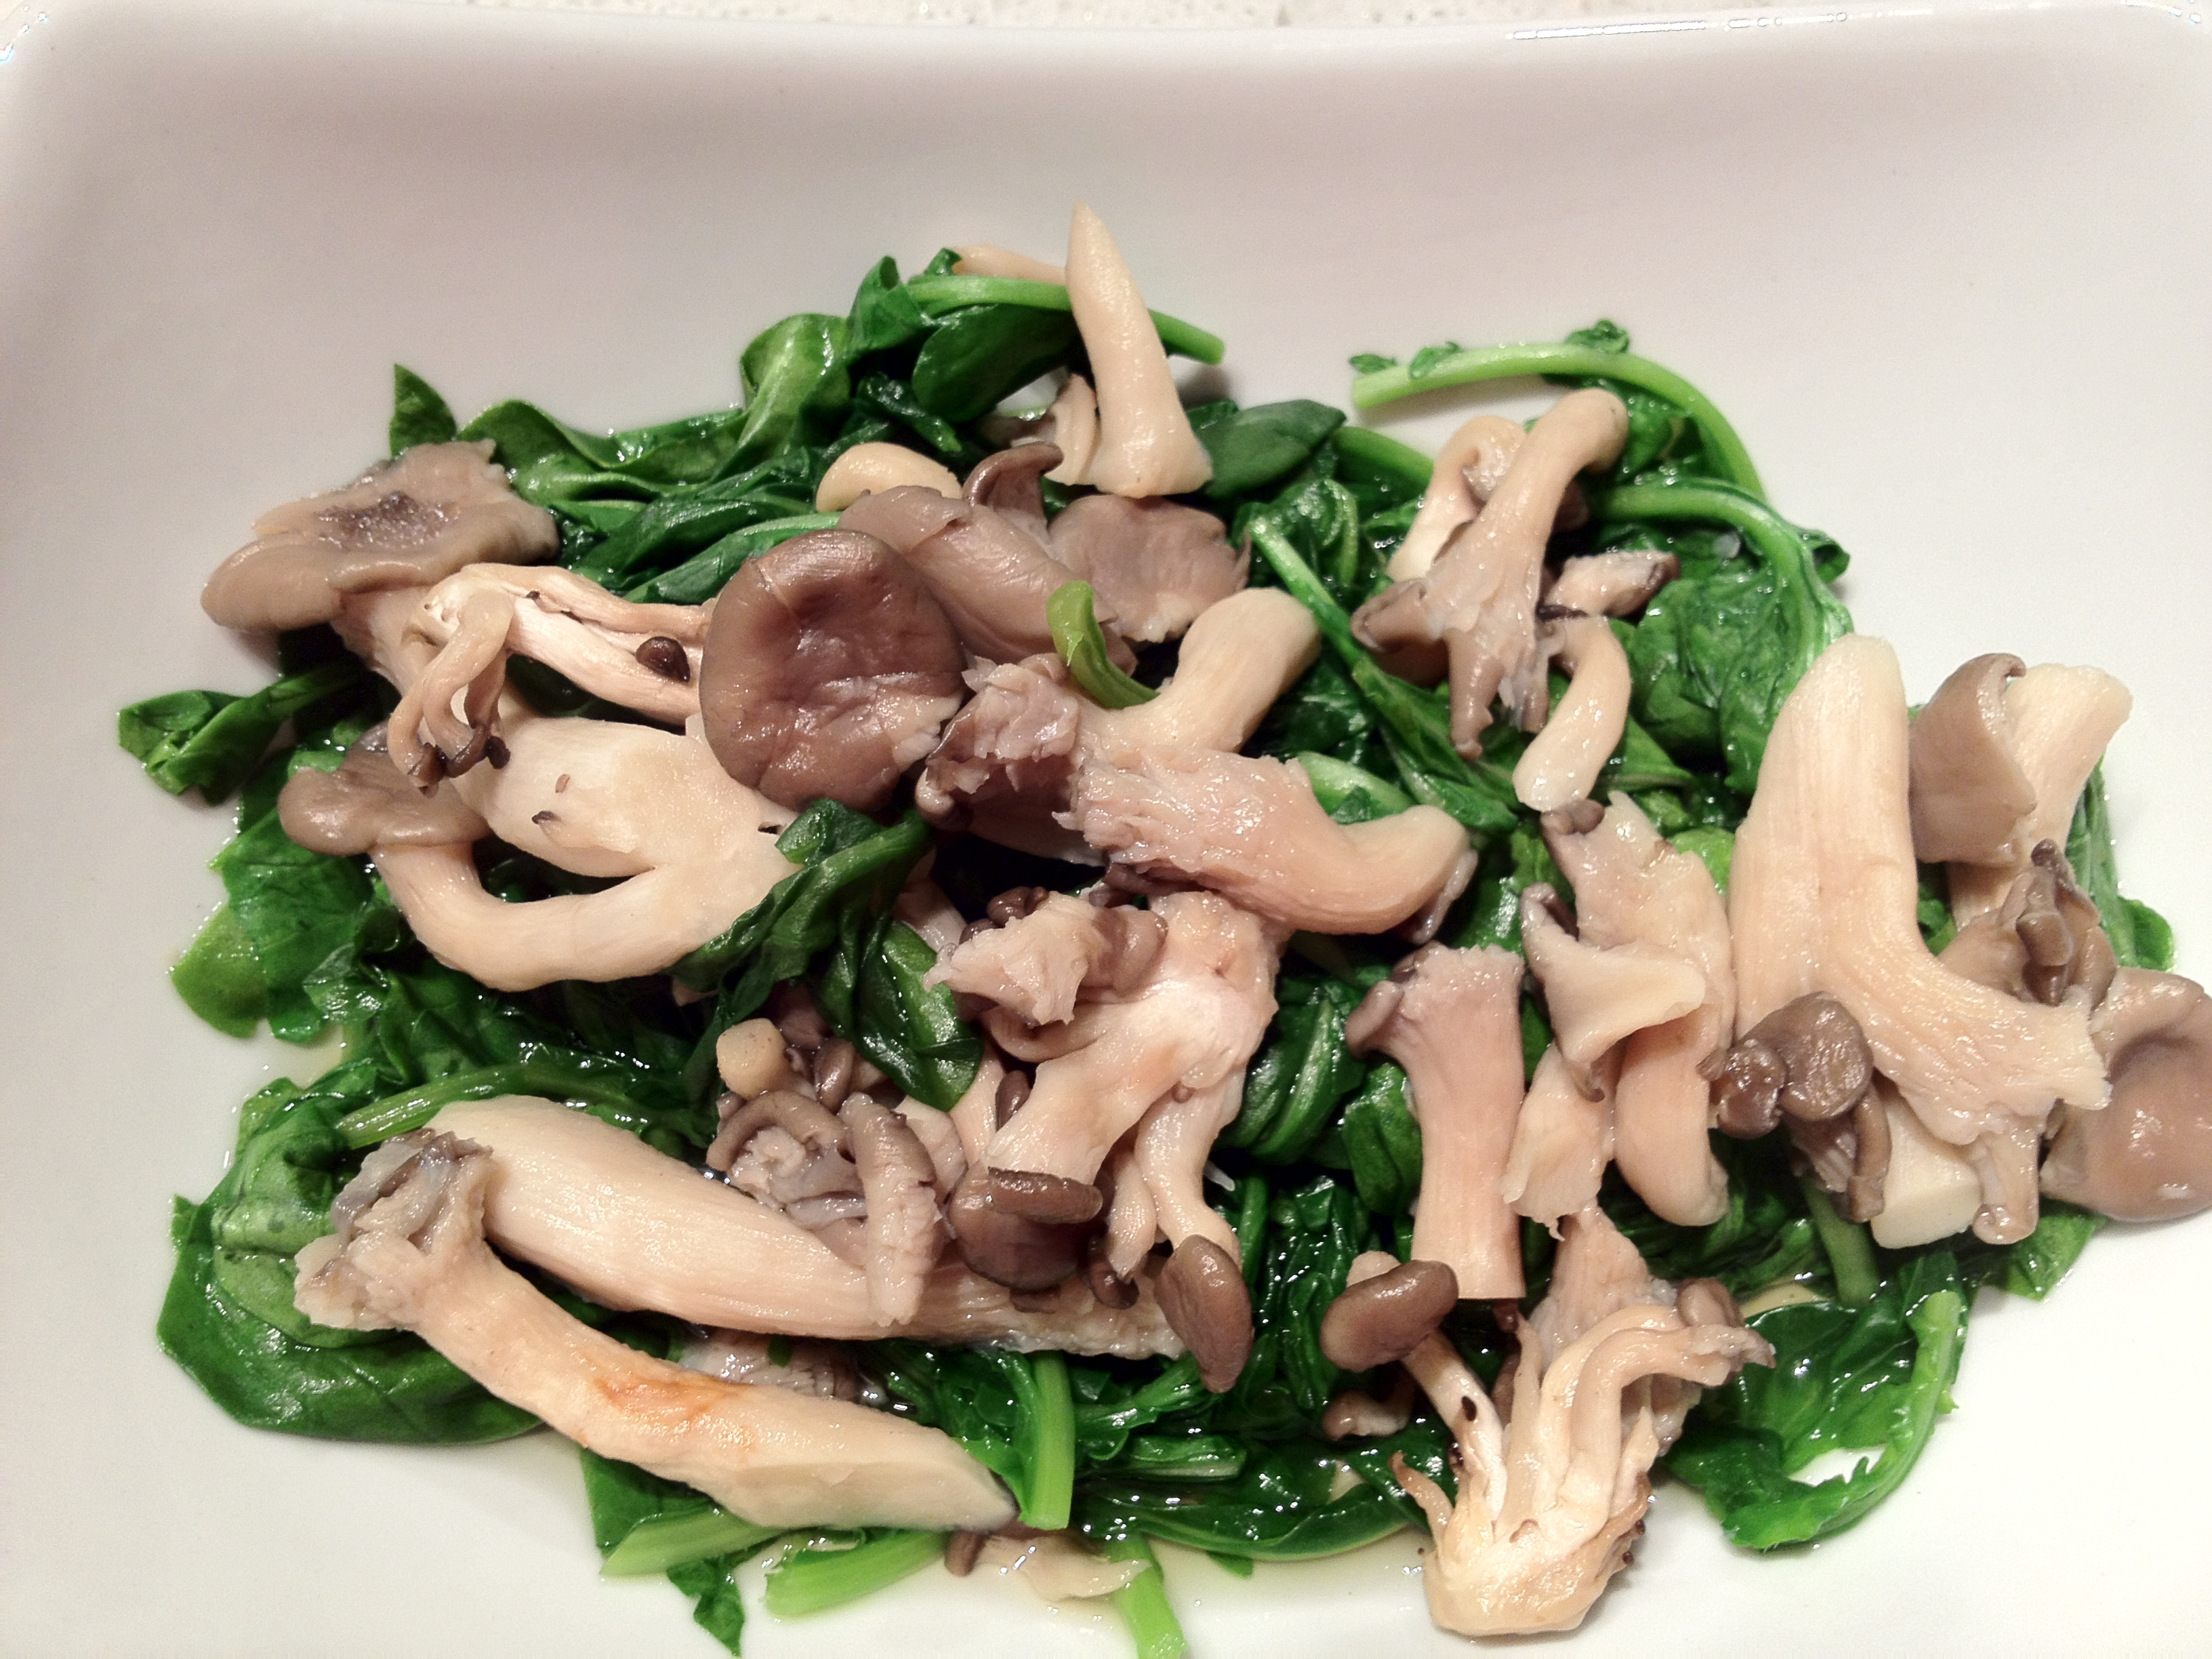 Easy, Healthy, Delicious – Mushrooms and Dark Greens